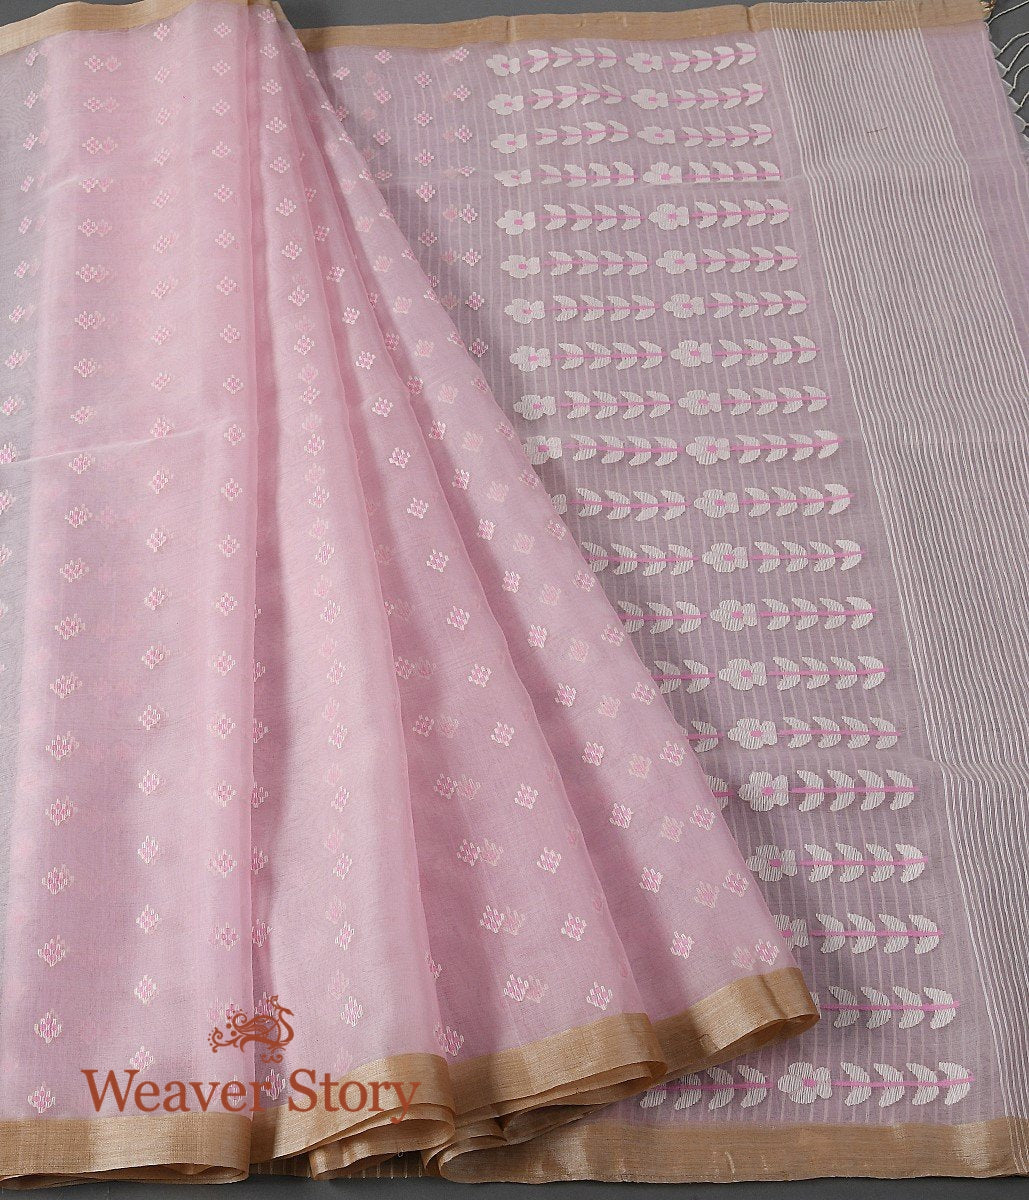 Handwoven Light Pink Dhakai Jamdani Saree with White Booti